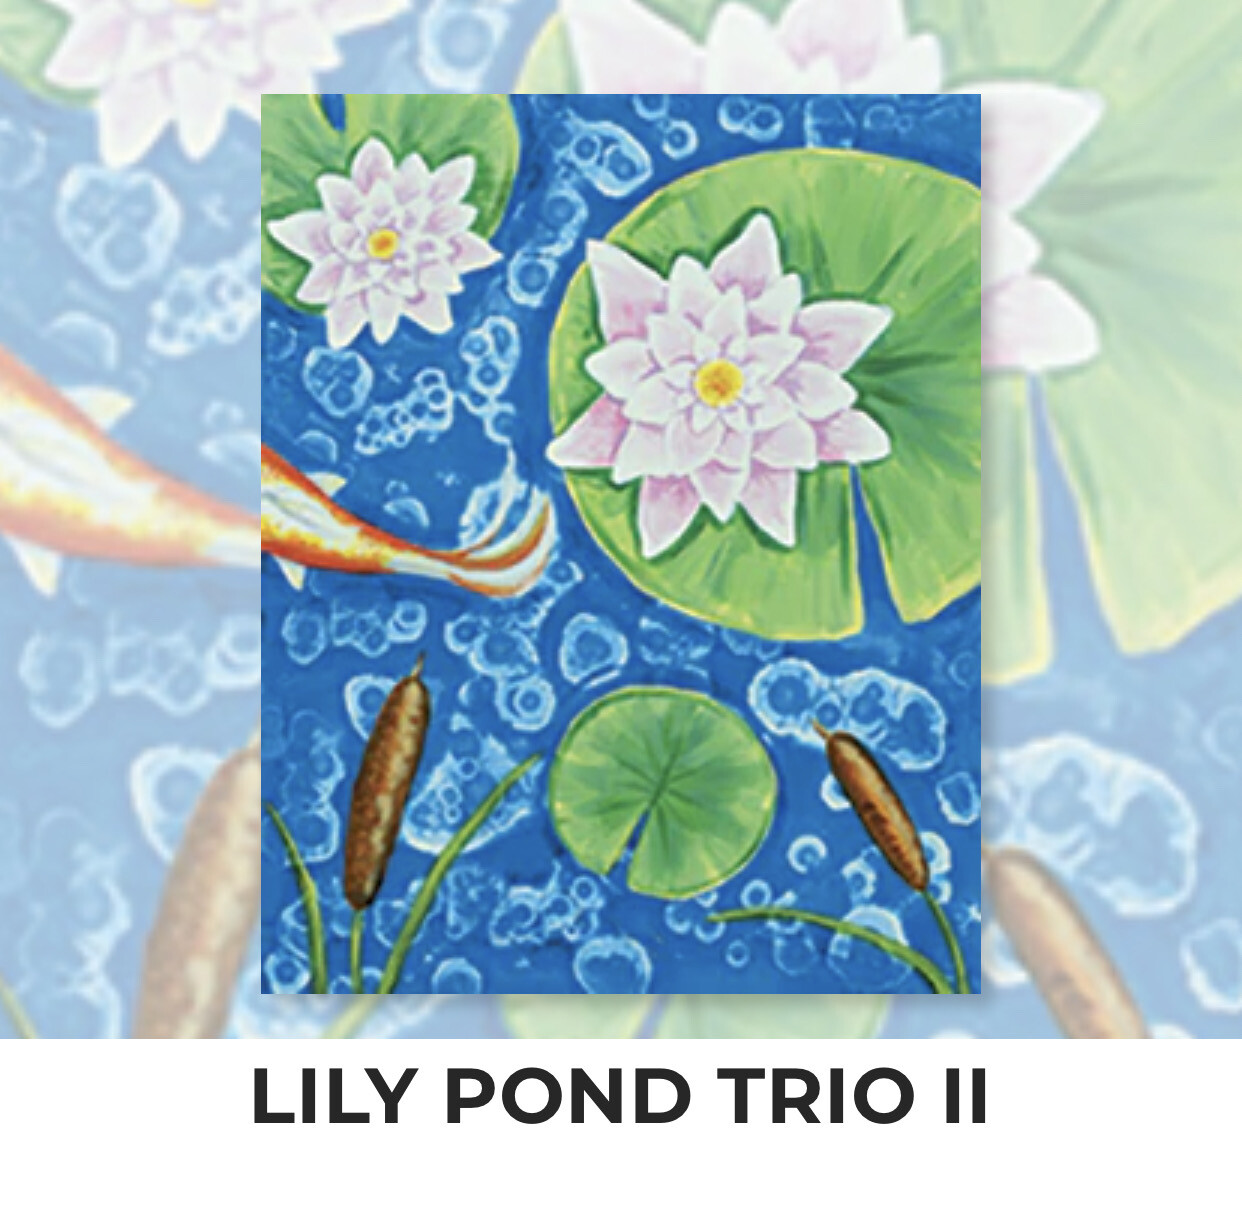 Lily Pond Trio II ADULT Acrylic Paint On Canvas DIY Art Kit - 3 Week Special Order